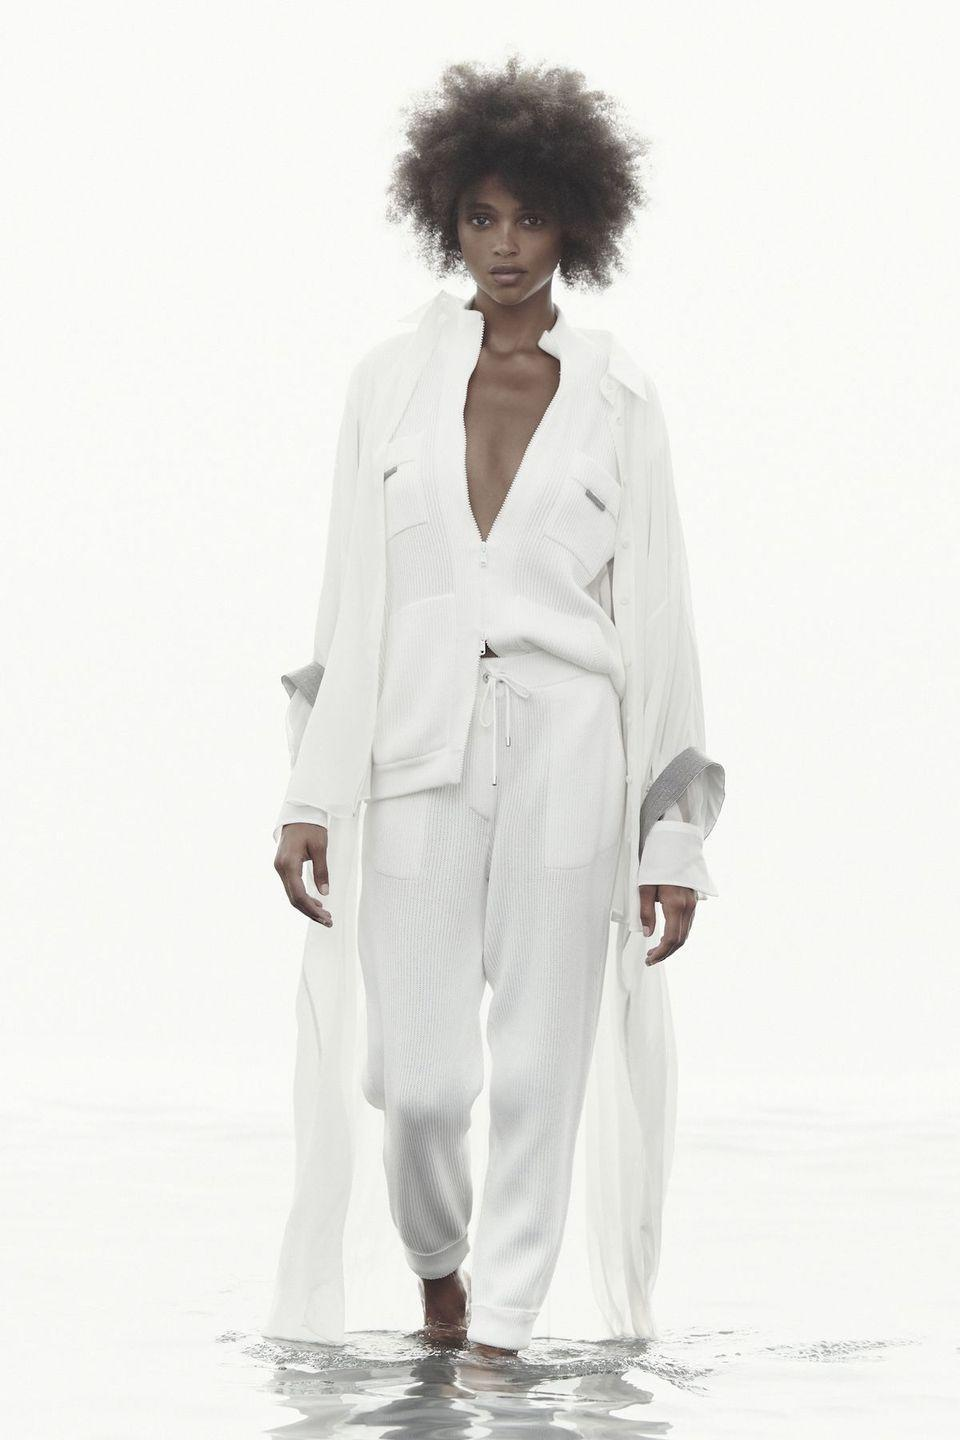 <p>Elevated basics with a focus on special details is the hallmark of cashmere king Brunello Cucinelli, and the designer drove this point home for spring 2021. He presented a collection titled Pure Spirit that focused on relaxed silhouettes, soft colors, and interplay of textures. A gilded leather coat adds a glam finish to a humble fisherman sweater, while a macramé top—featuring precious sequin yarns and irregular jute ropes knotted together—peeks out from underneath an easy linen suit. Even cozy knit sweats paired with a flowing silk robe are given the royal treatment. Through each elegantly understated ensemble, Cucinelli proves that there's beauty in simplicity. —<em>Barry Samaha</em>. </p>